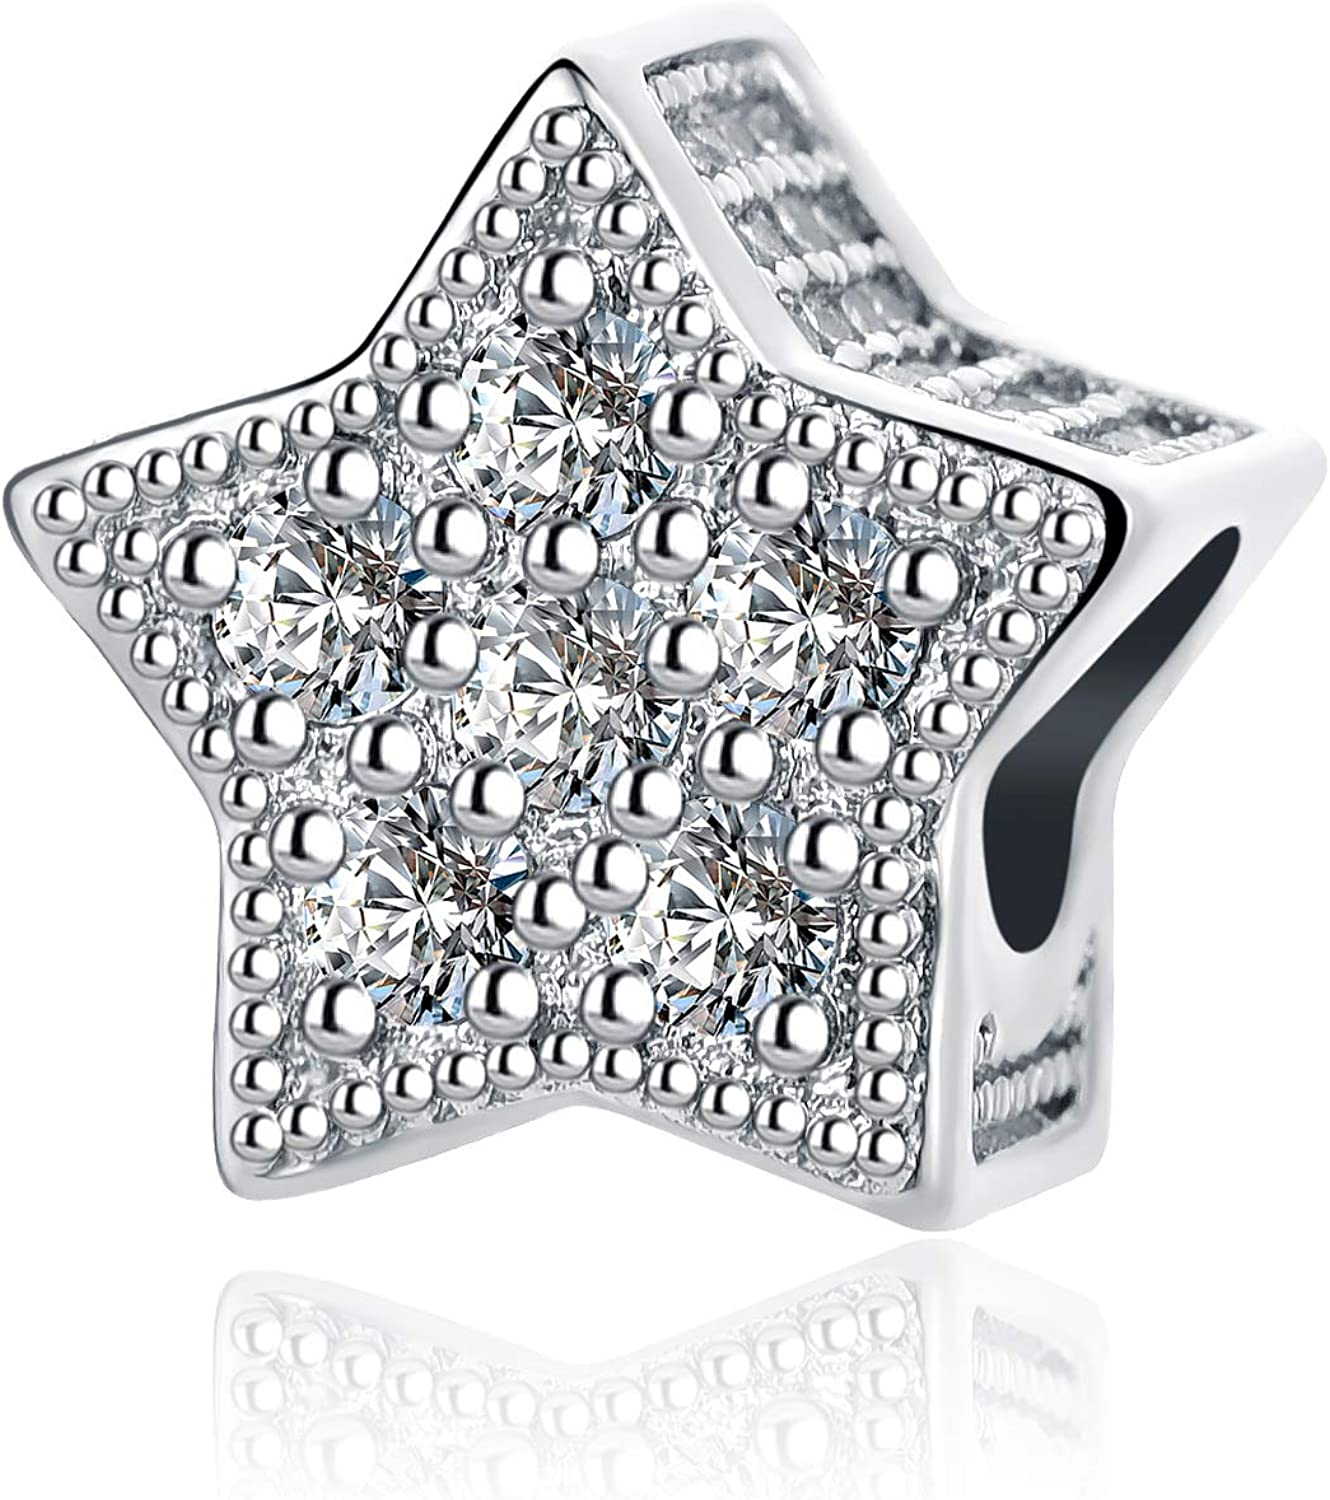 QeenseKc Inspirational Stars Charm Openwork Clear CZ Bead Mothers Day Gift fit Pandora Bracelet